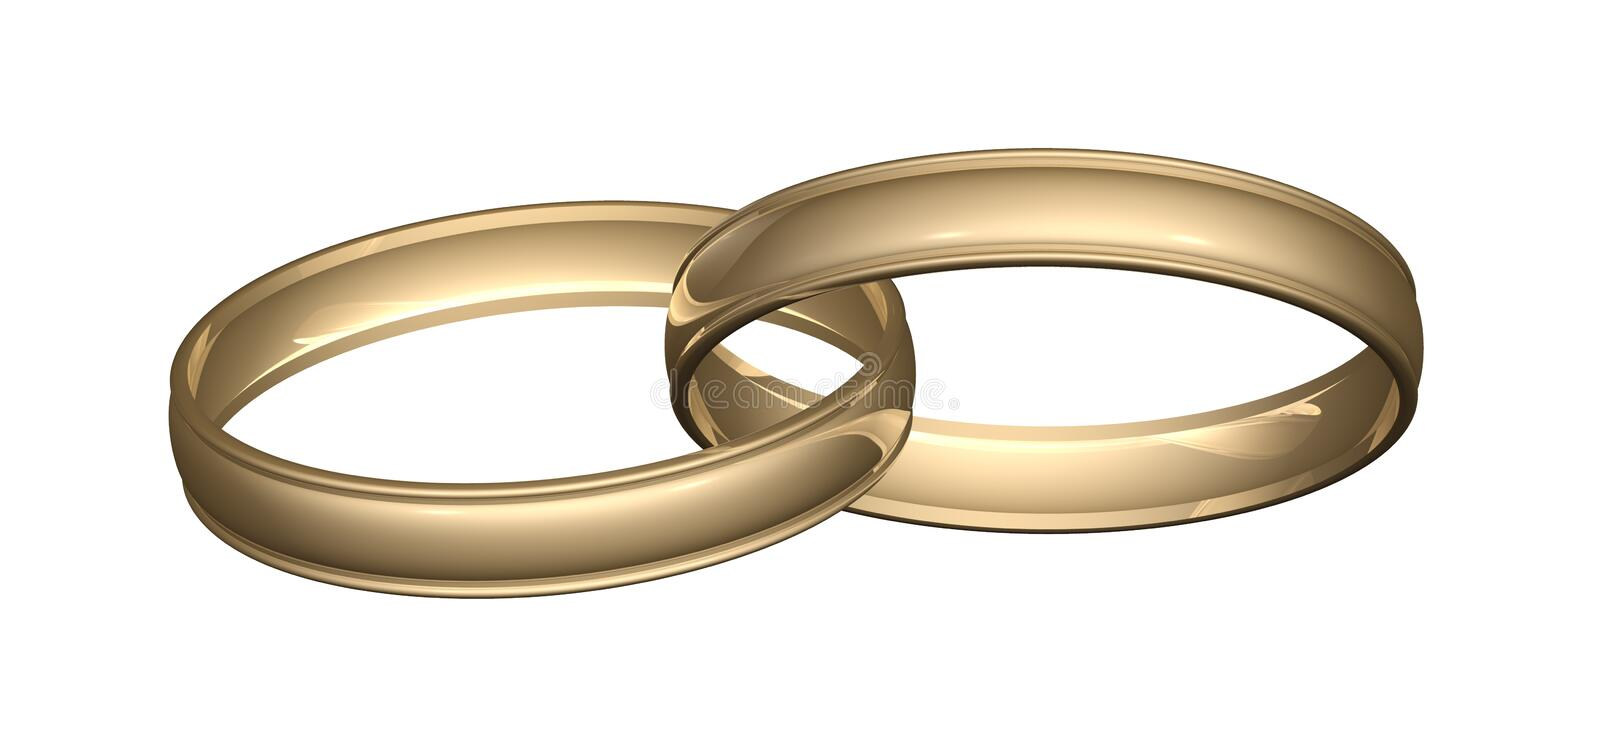 Wedding Rings Gold Stock Photo